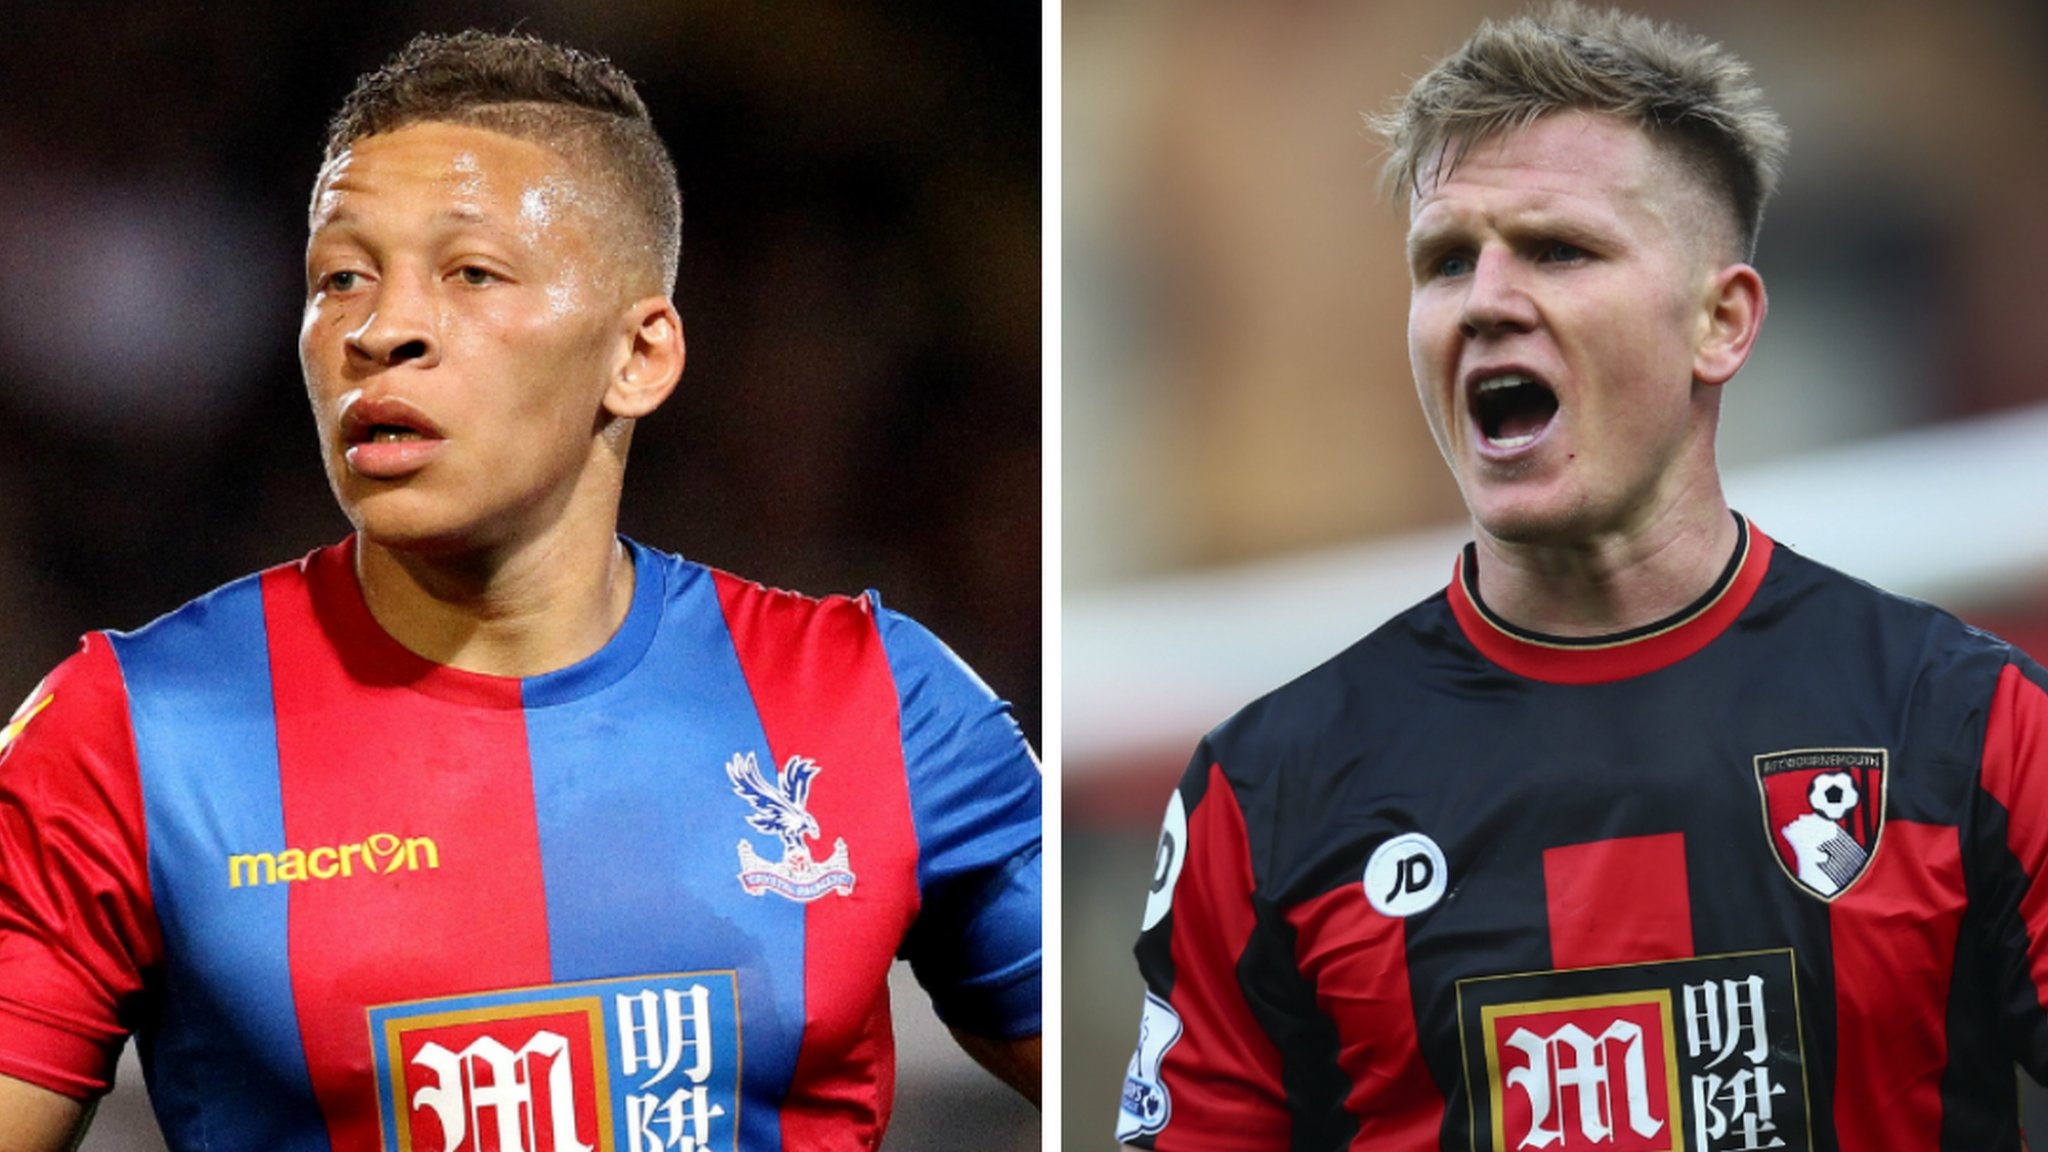 Newcastle United: Dwight Gayle and Matt Ritchie join Championship side